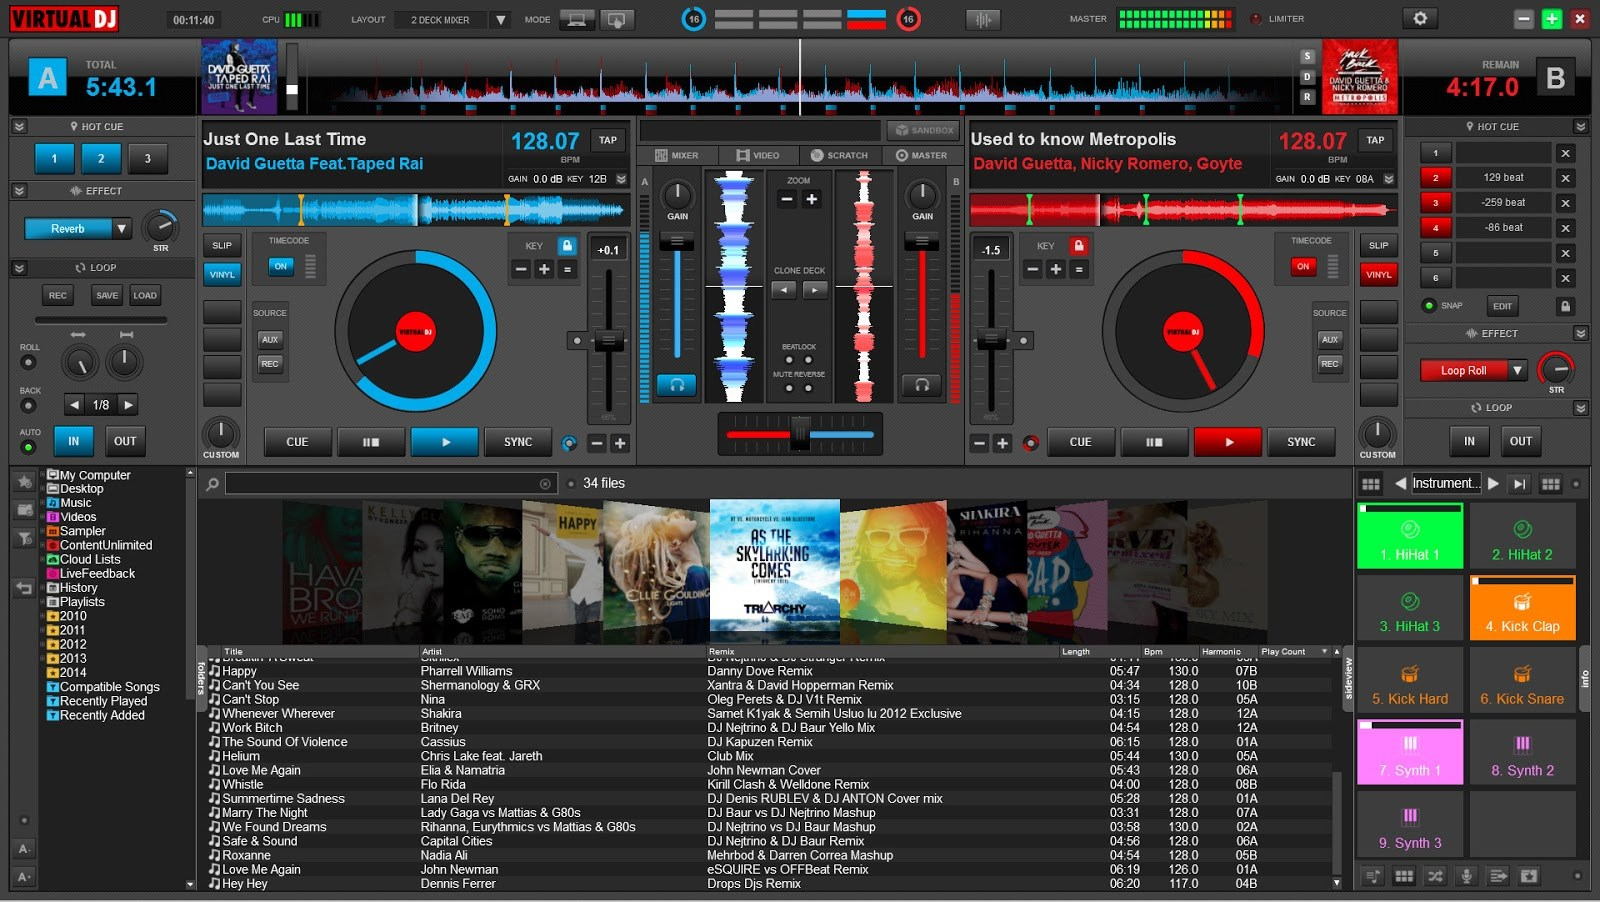 Atomix Virtual DJ Pro crack download